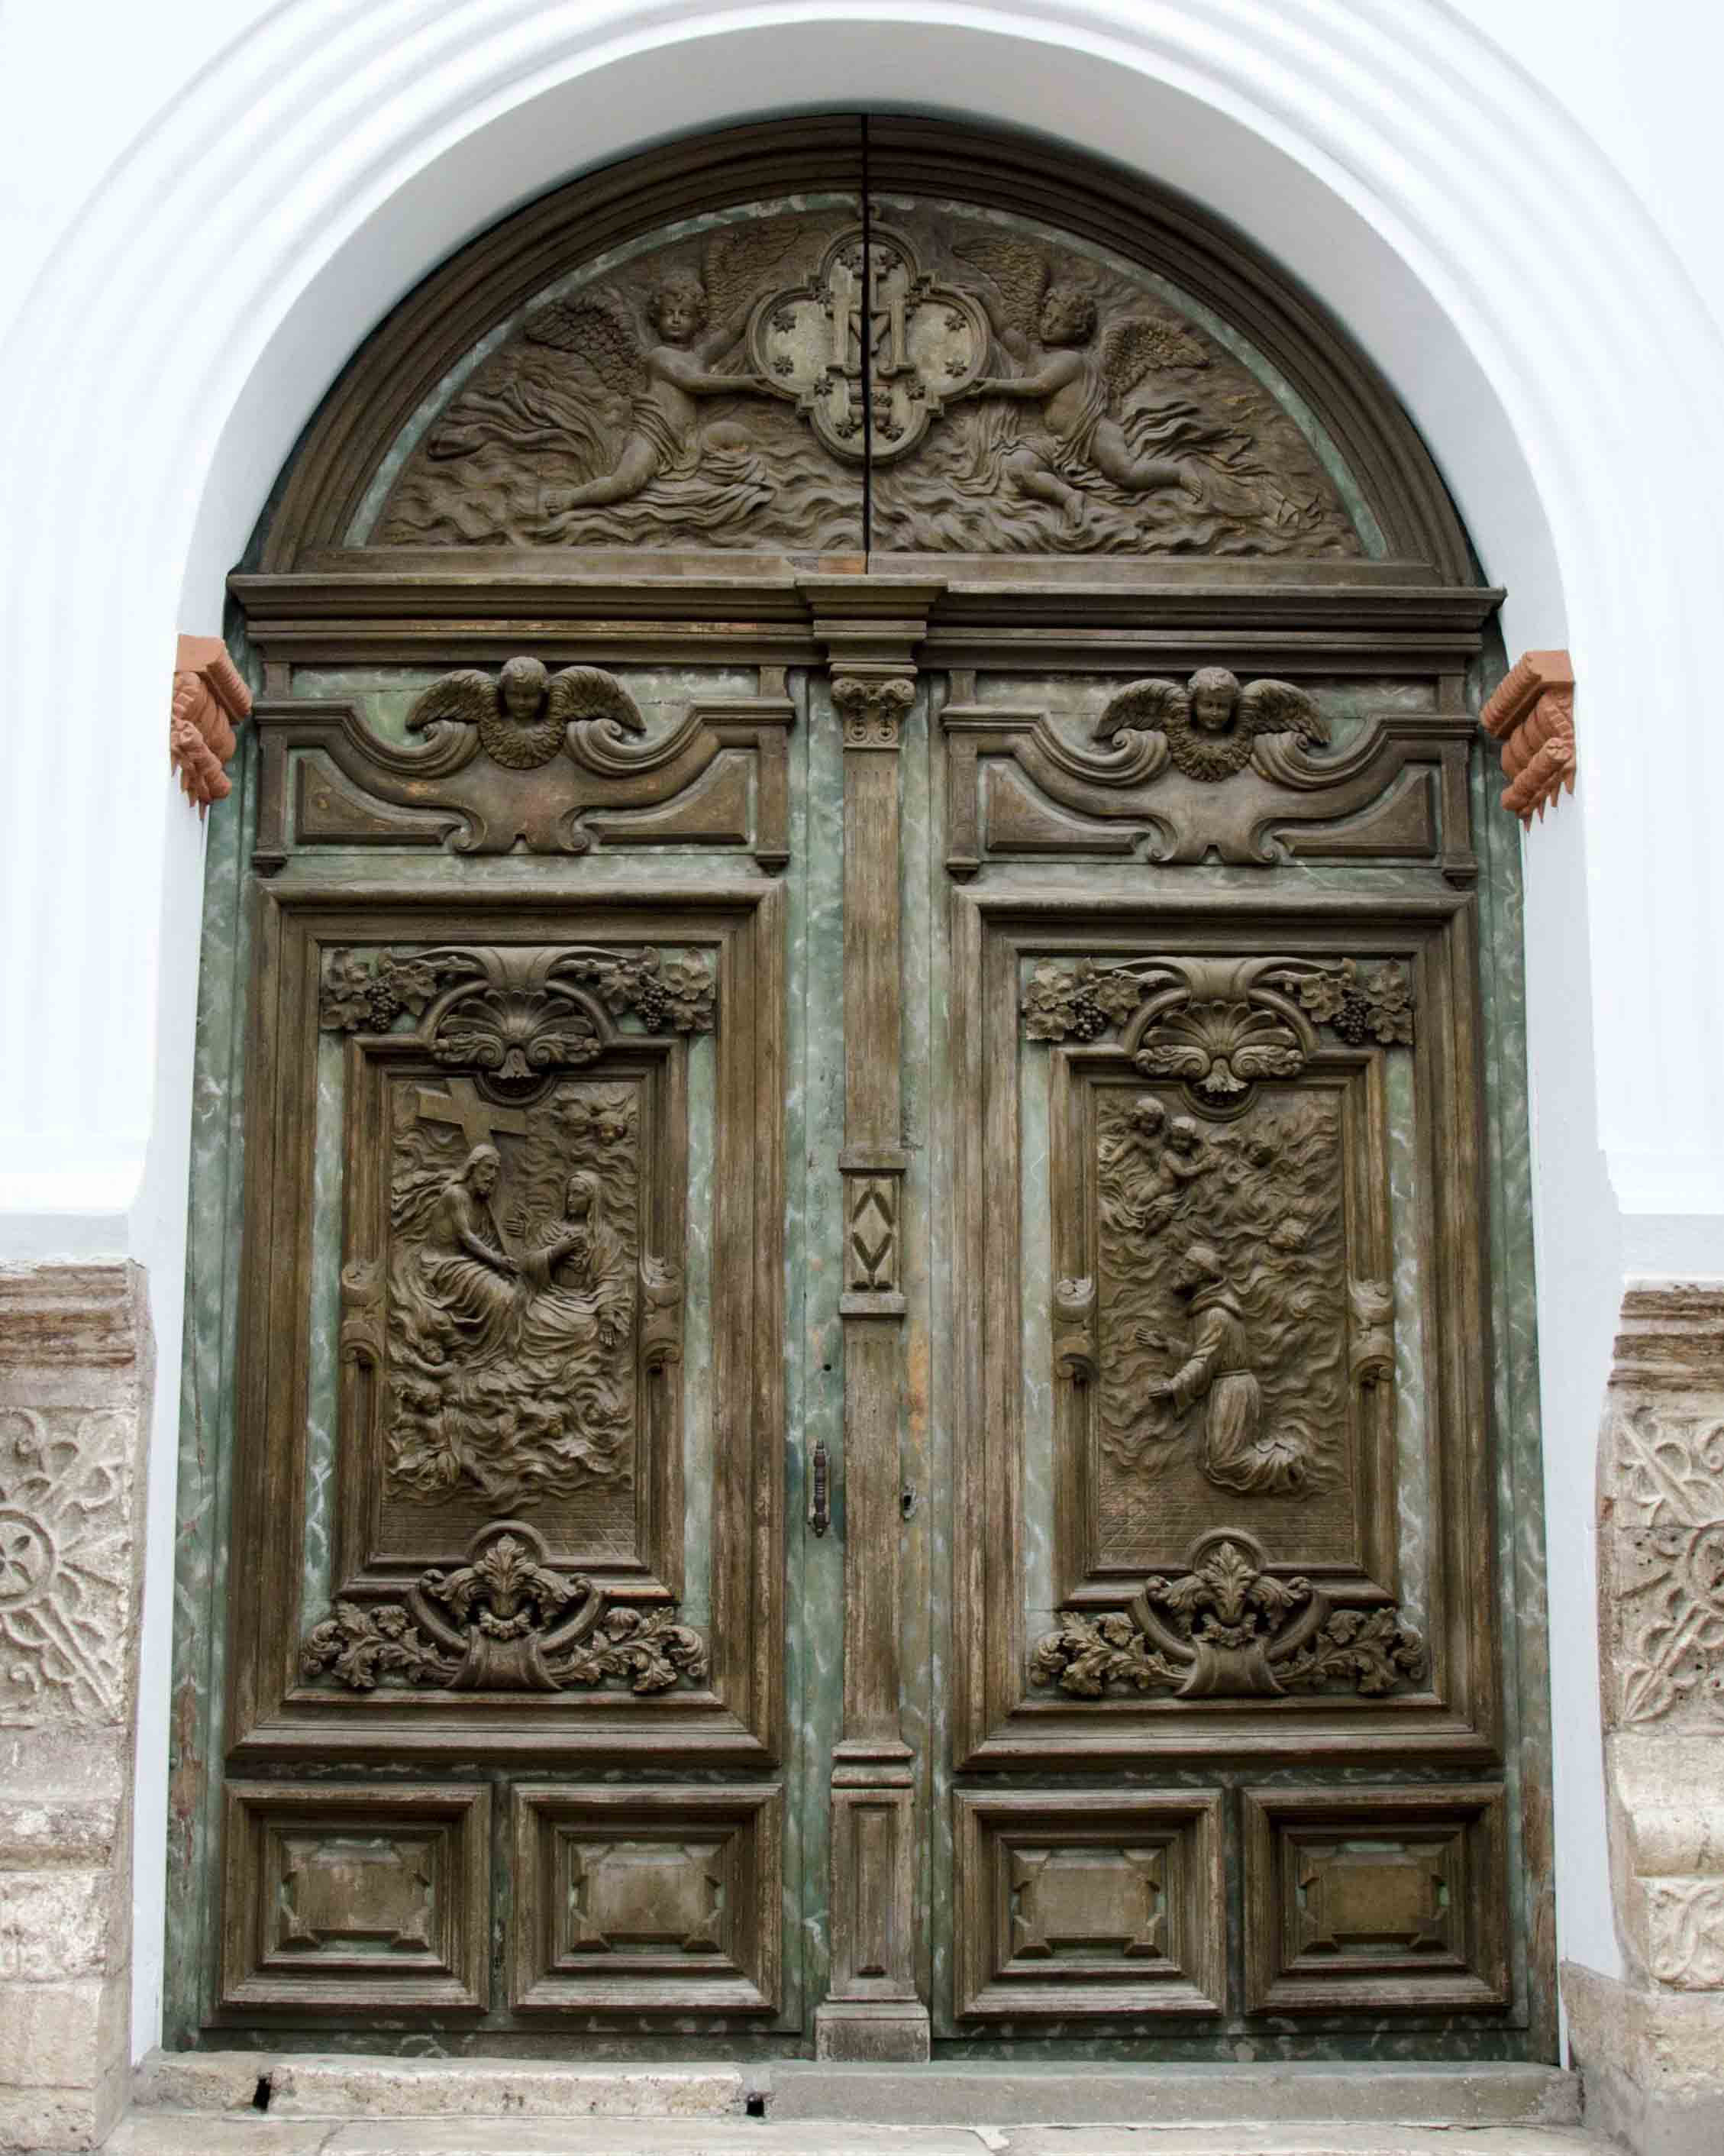 Carved wooden doors, Cuenca, Ecuador